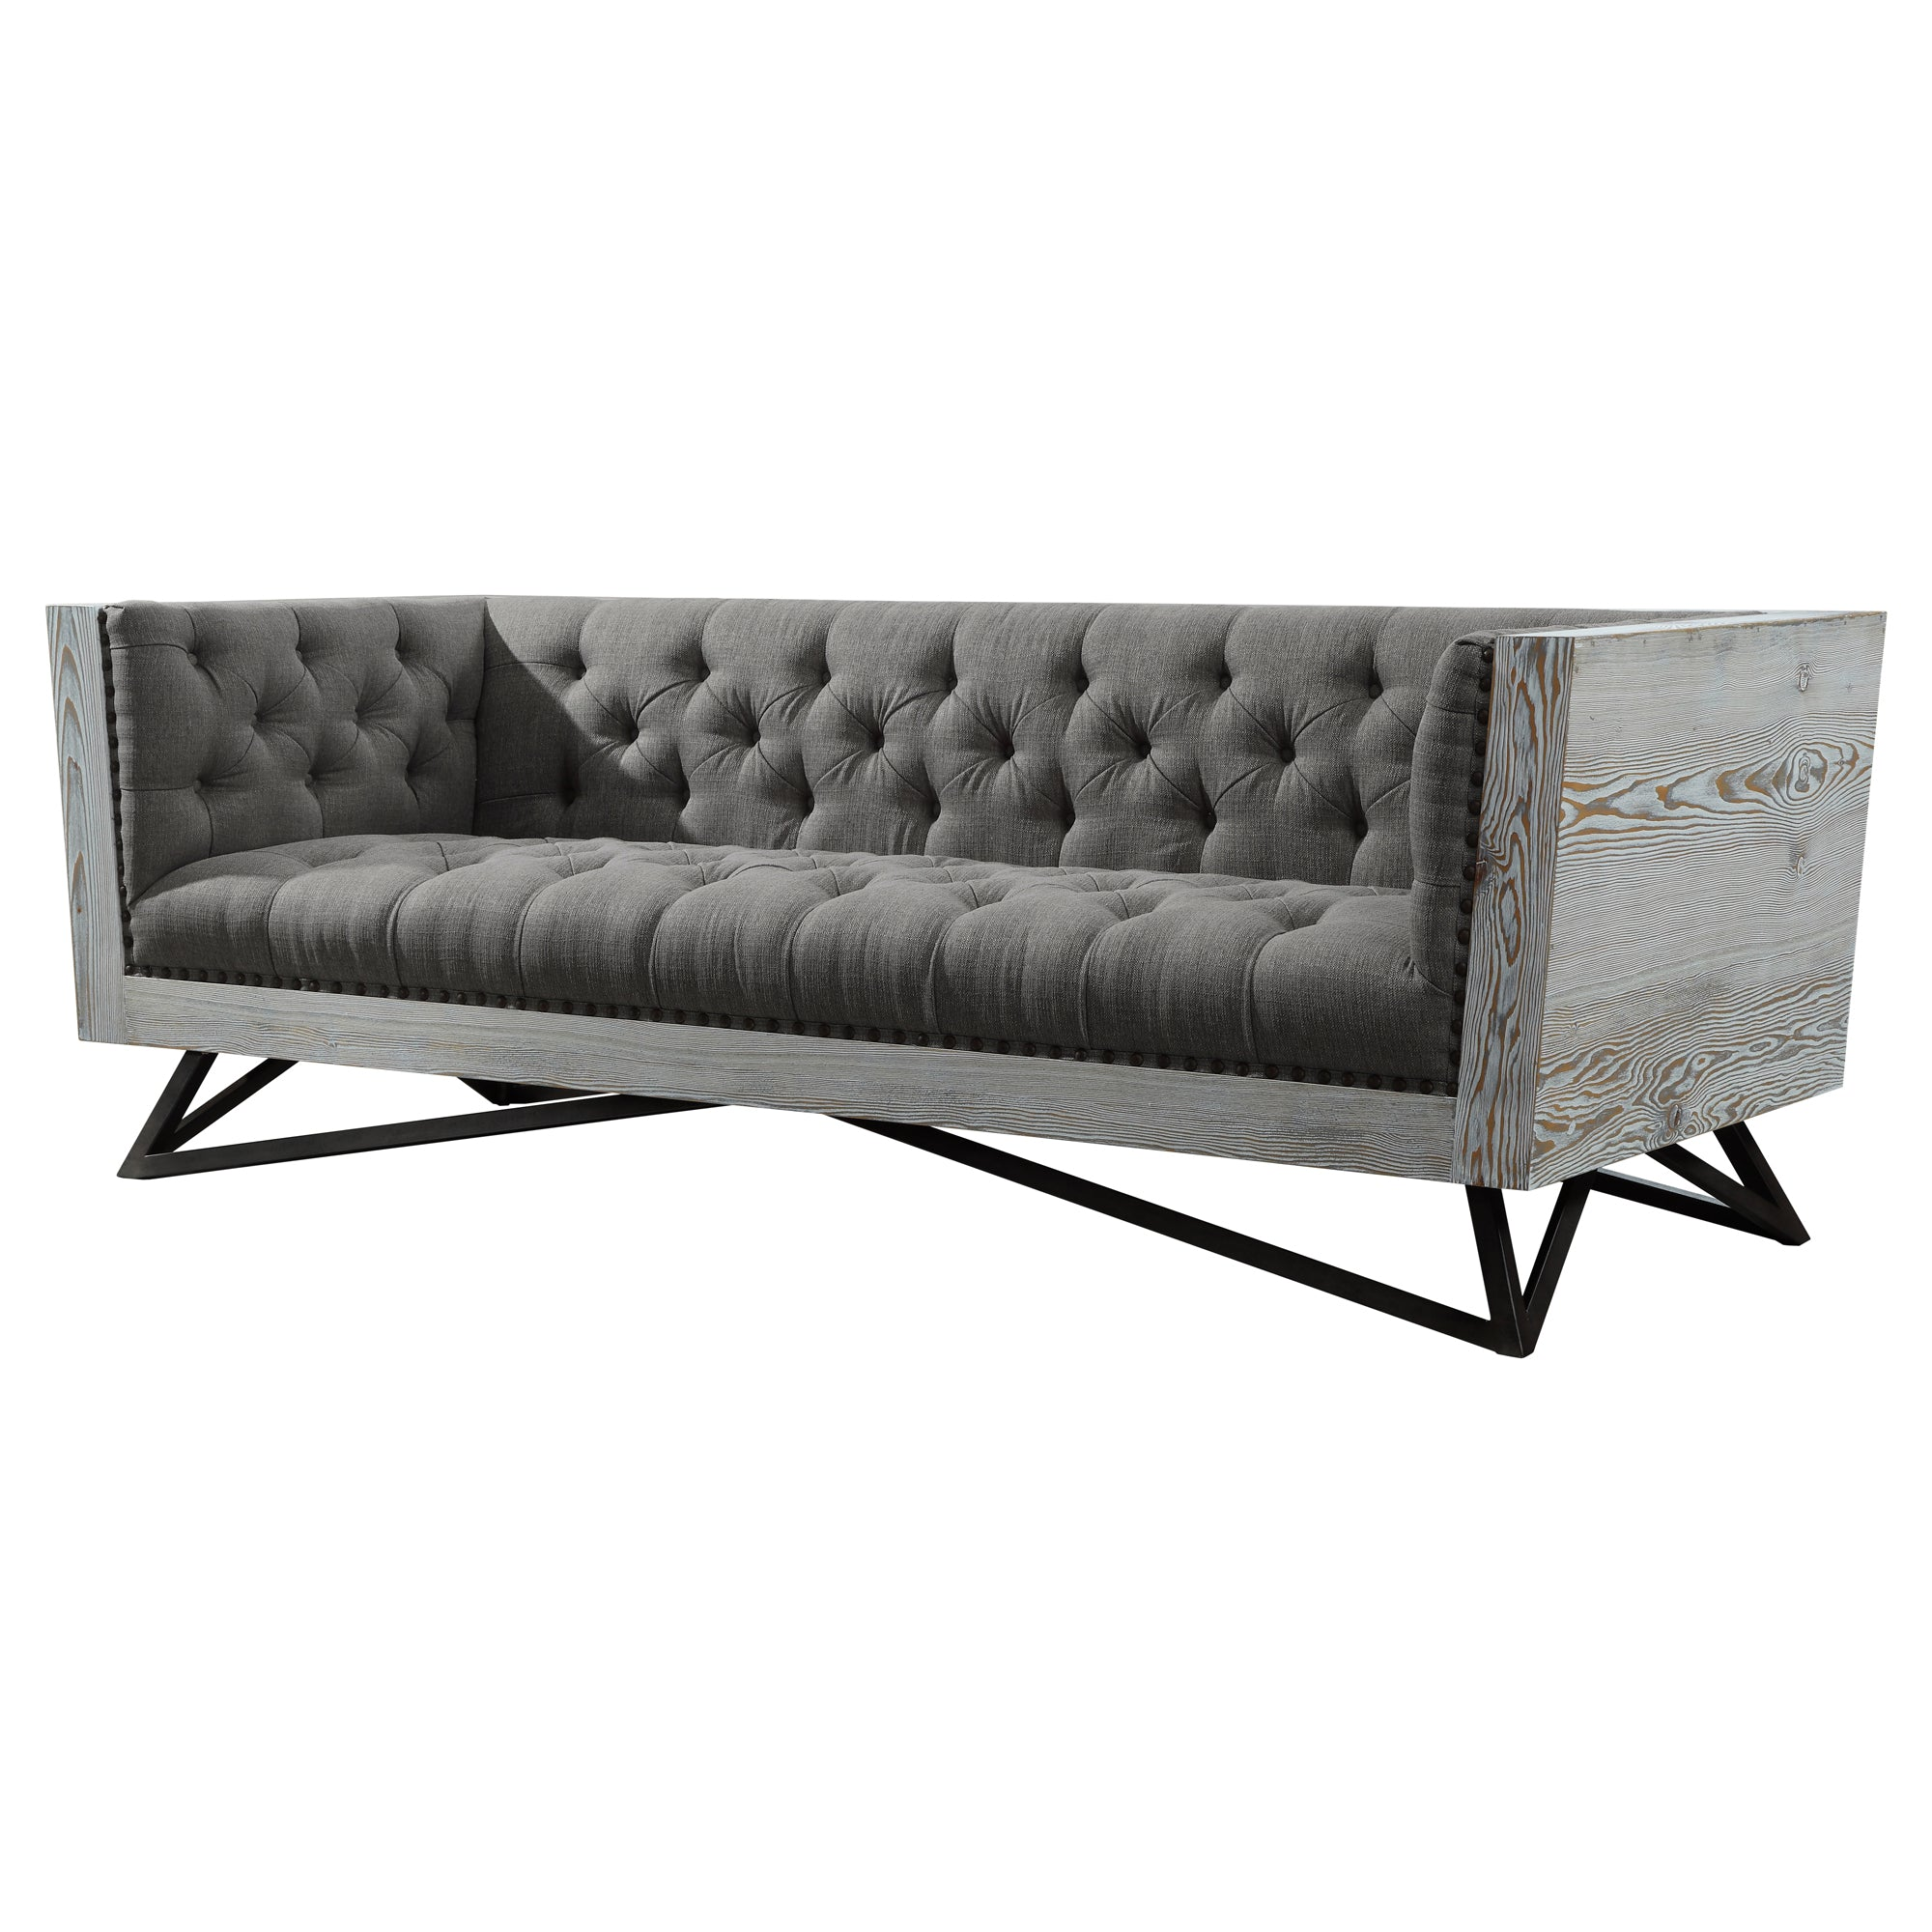 Contemporary Sofa Grey Fabric Black Metal Legs Antique